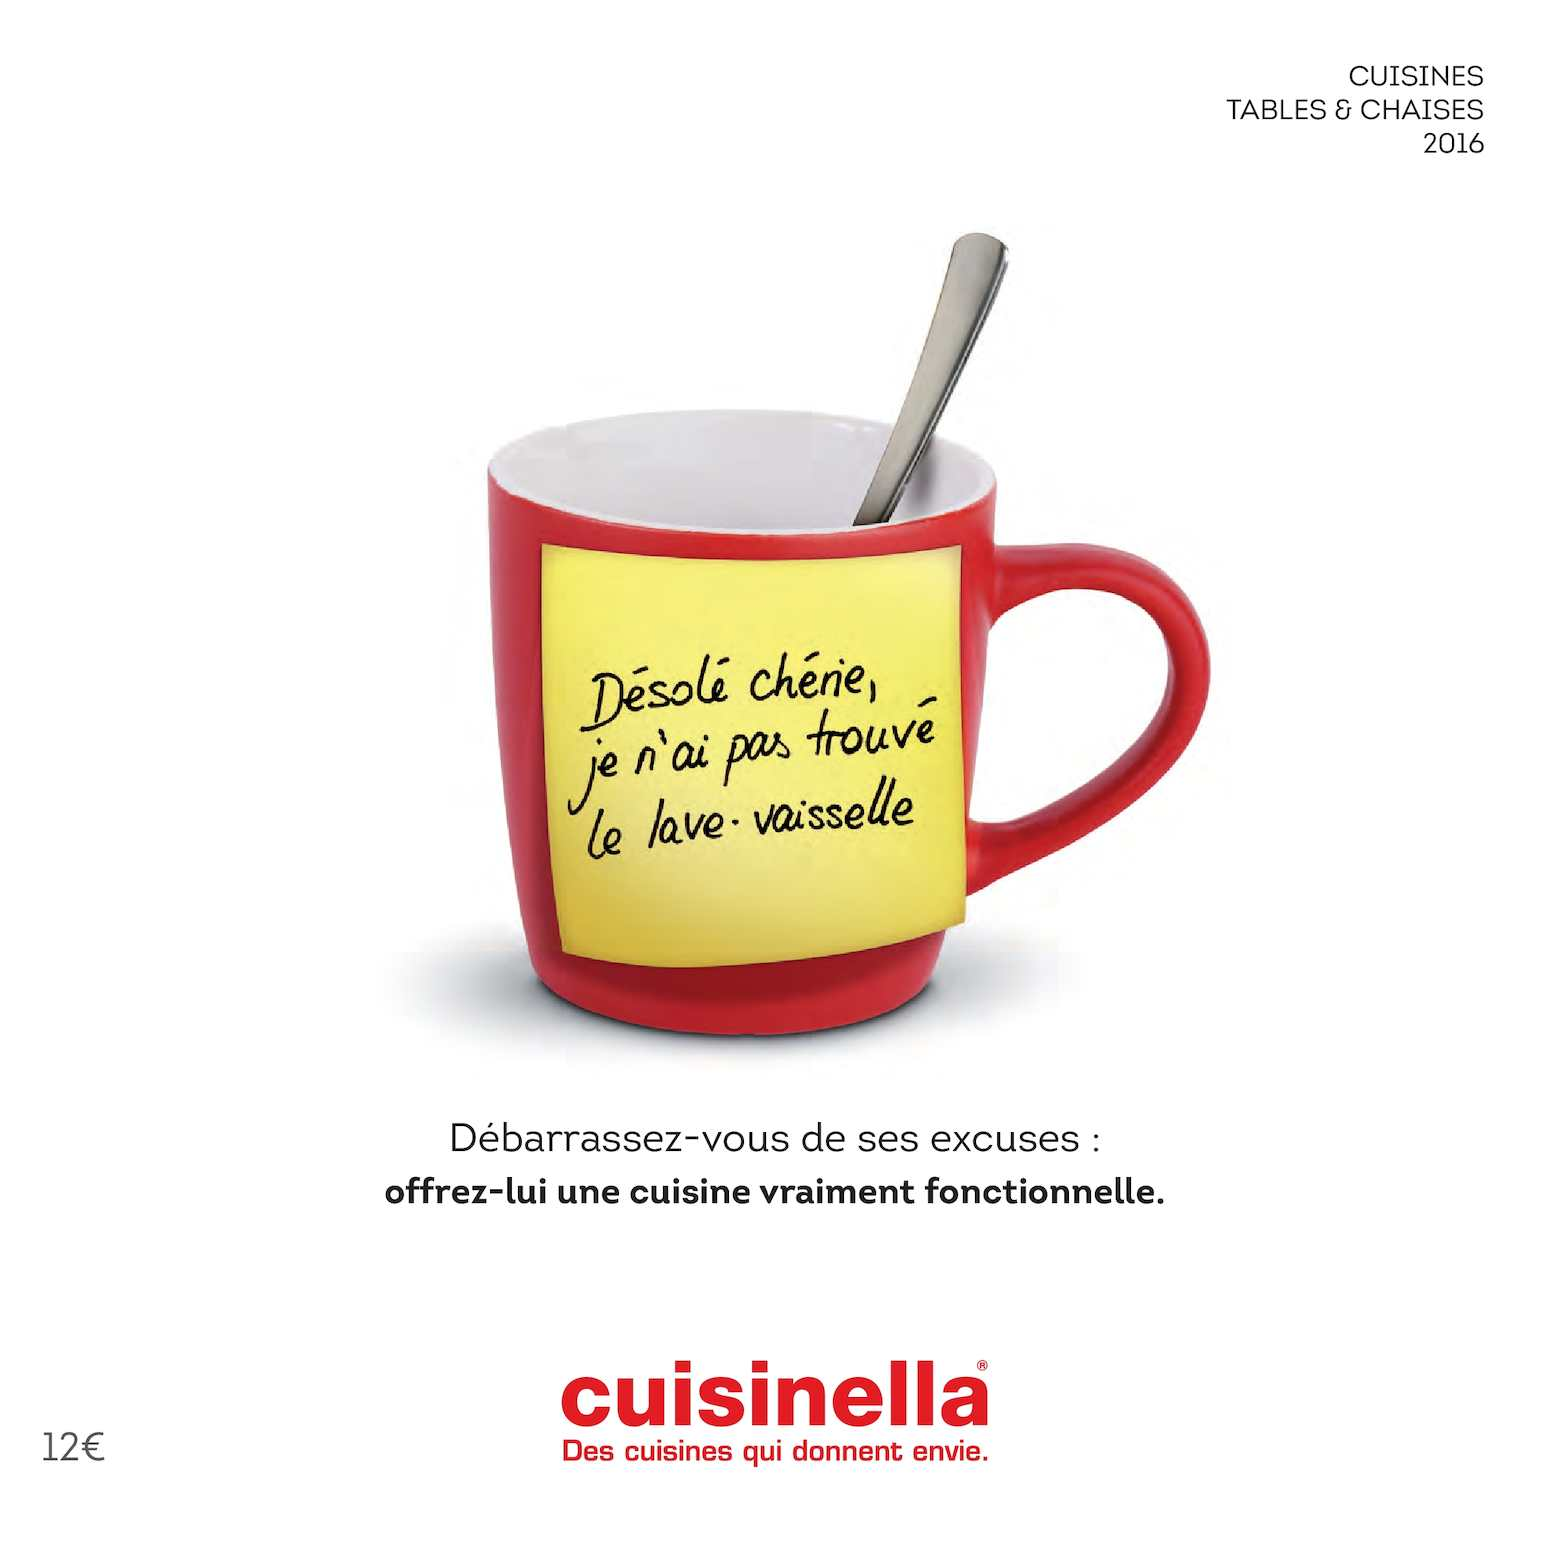 Calam o catalogue cuisinella les cuisines 2016 - Cuisine cuisinella catalogue ...